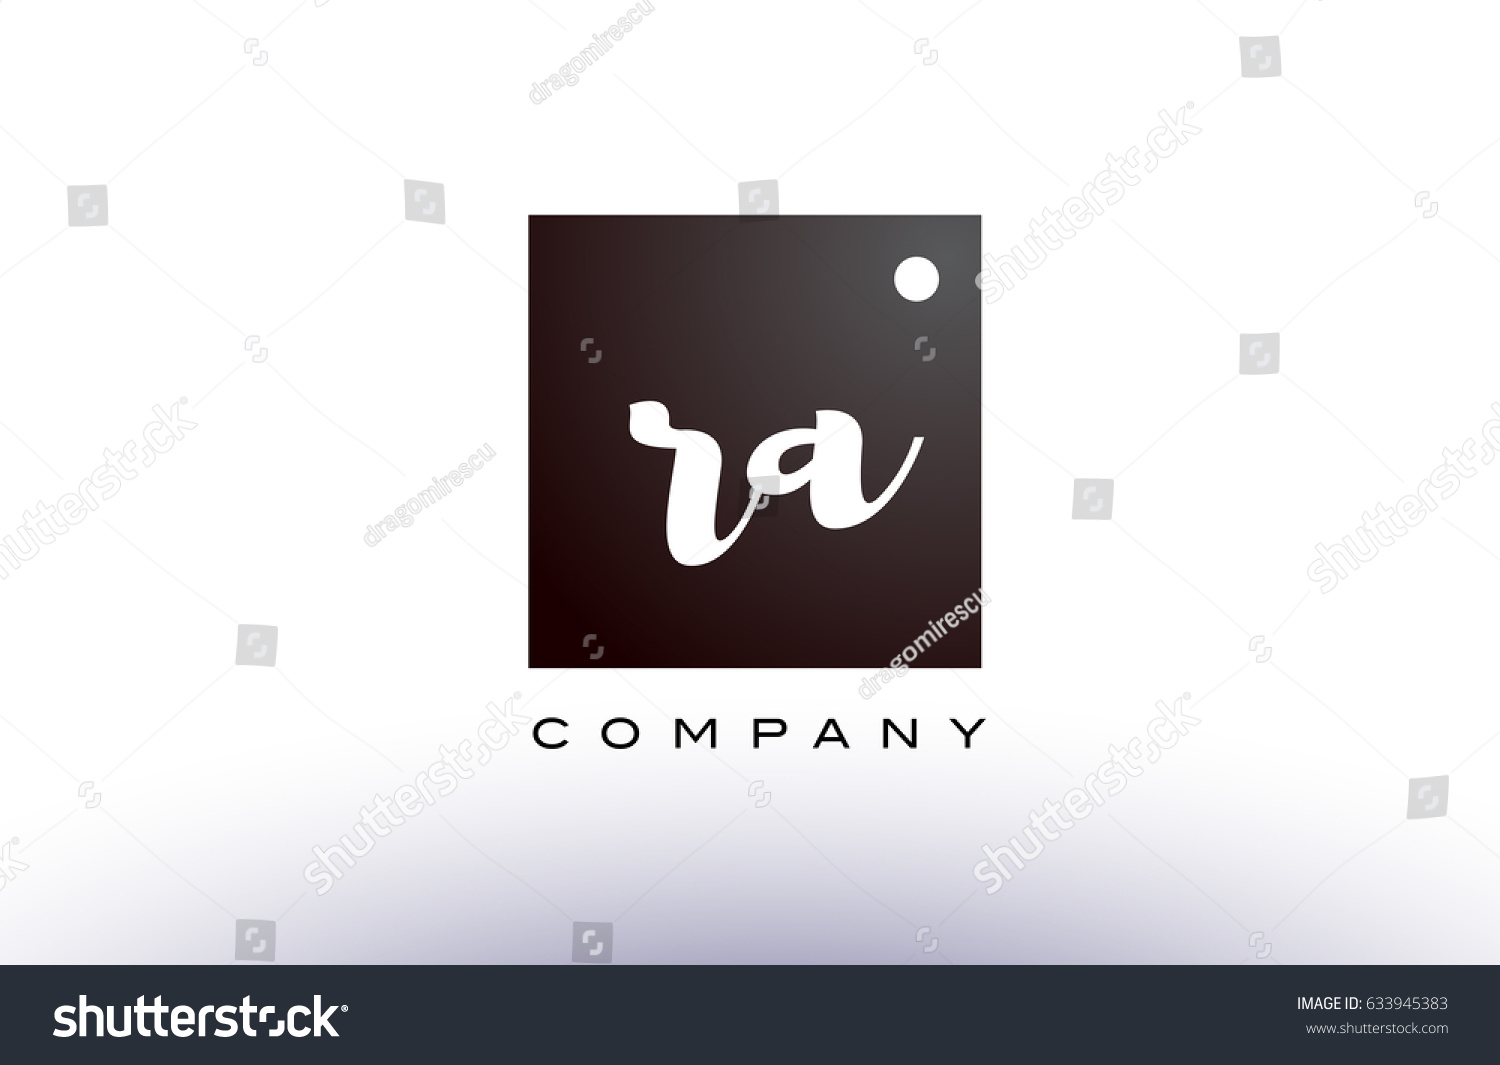 RA R Q black white handwritten handwriting alphabet company letter logo  square design template dot dots creative